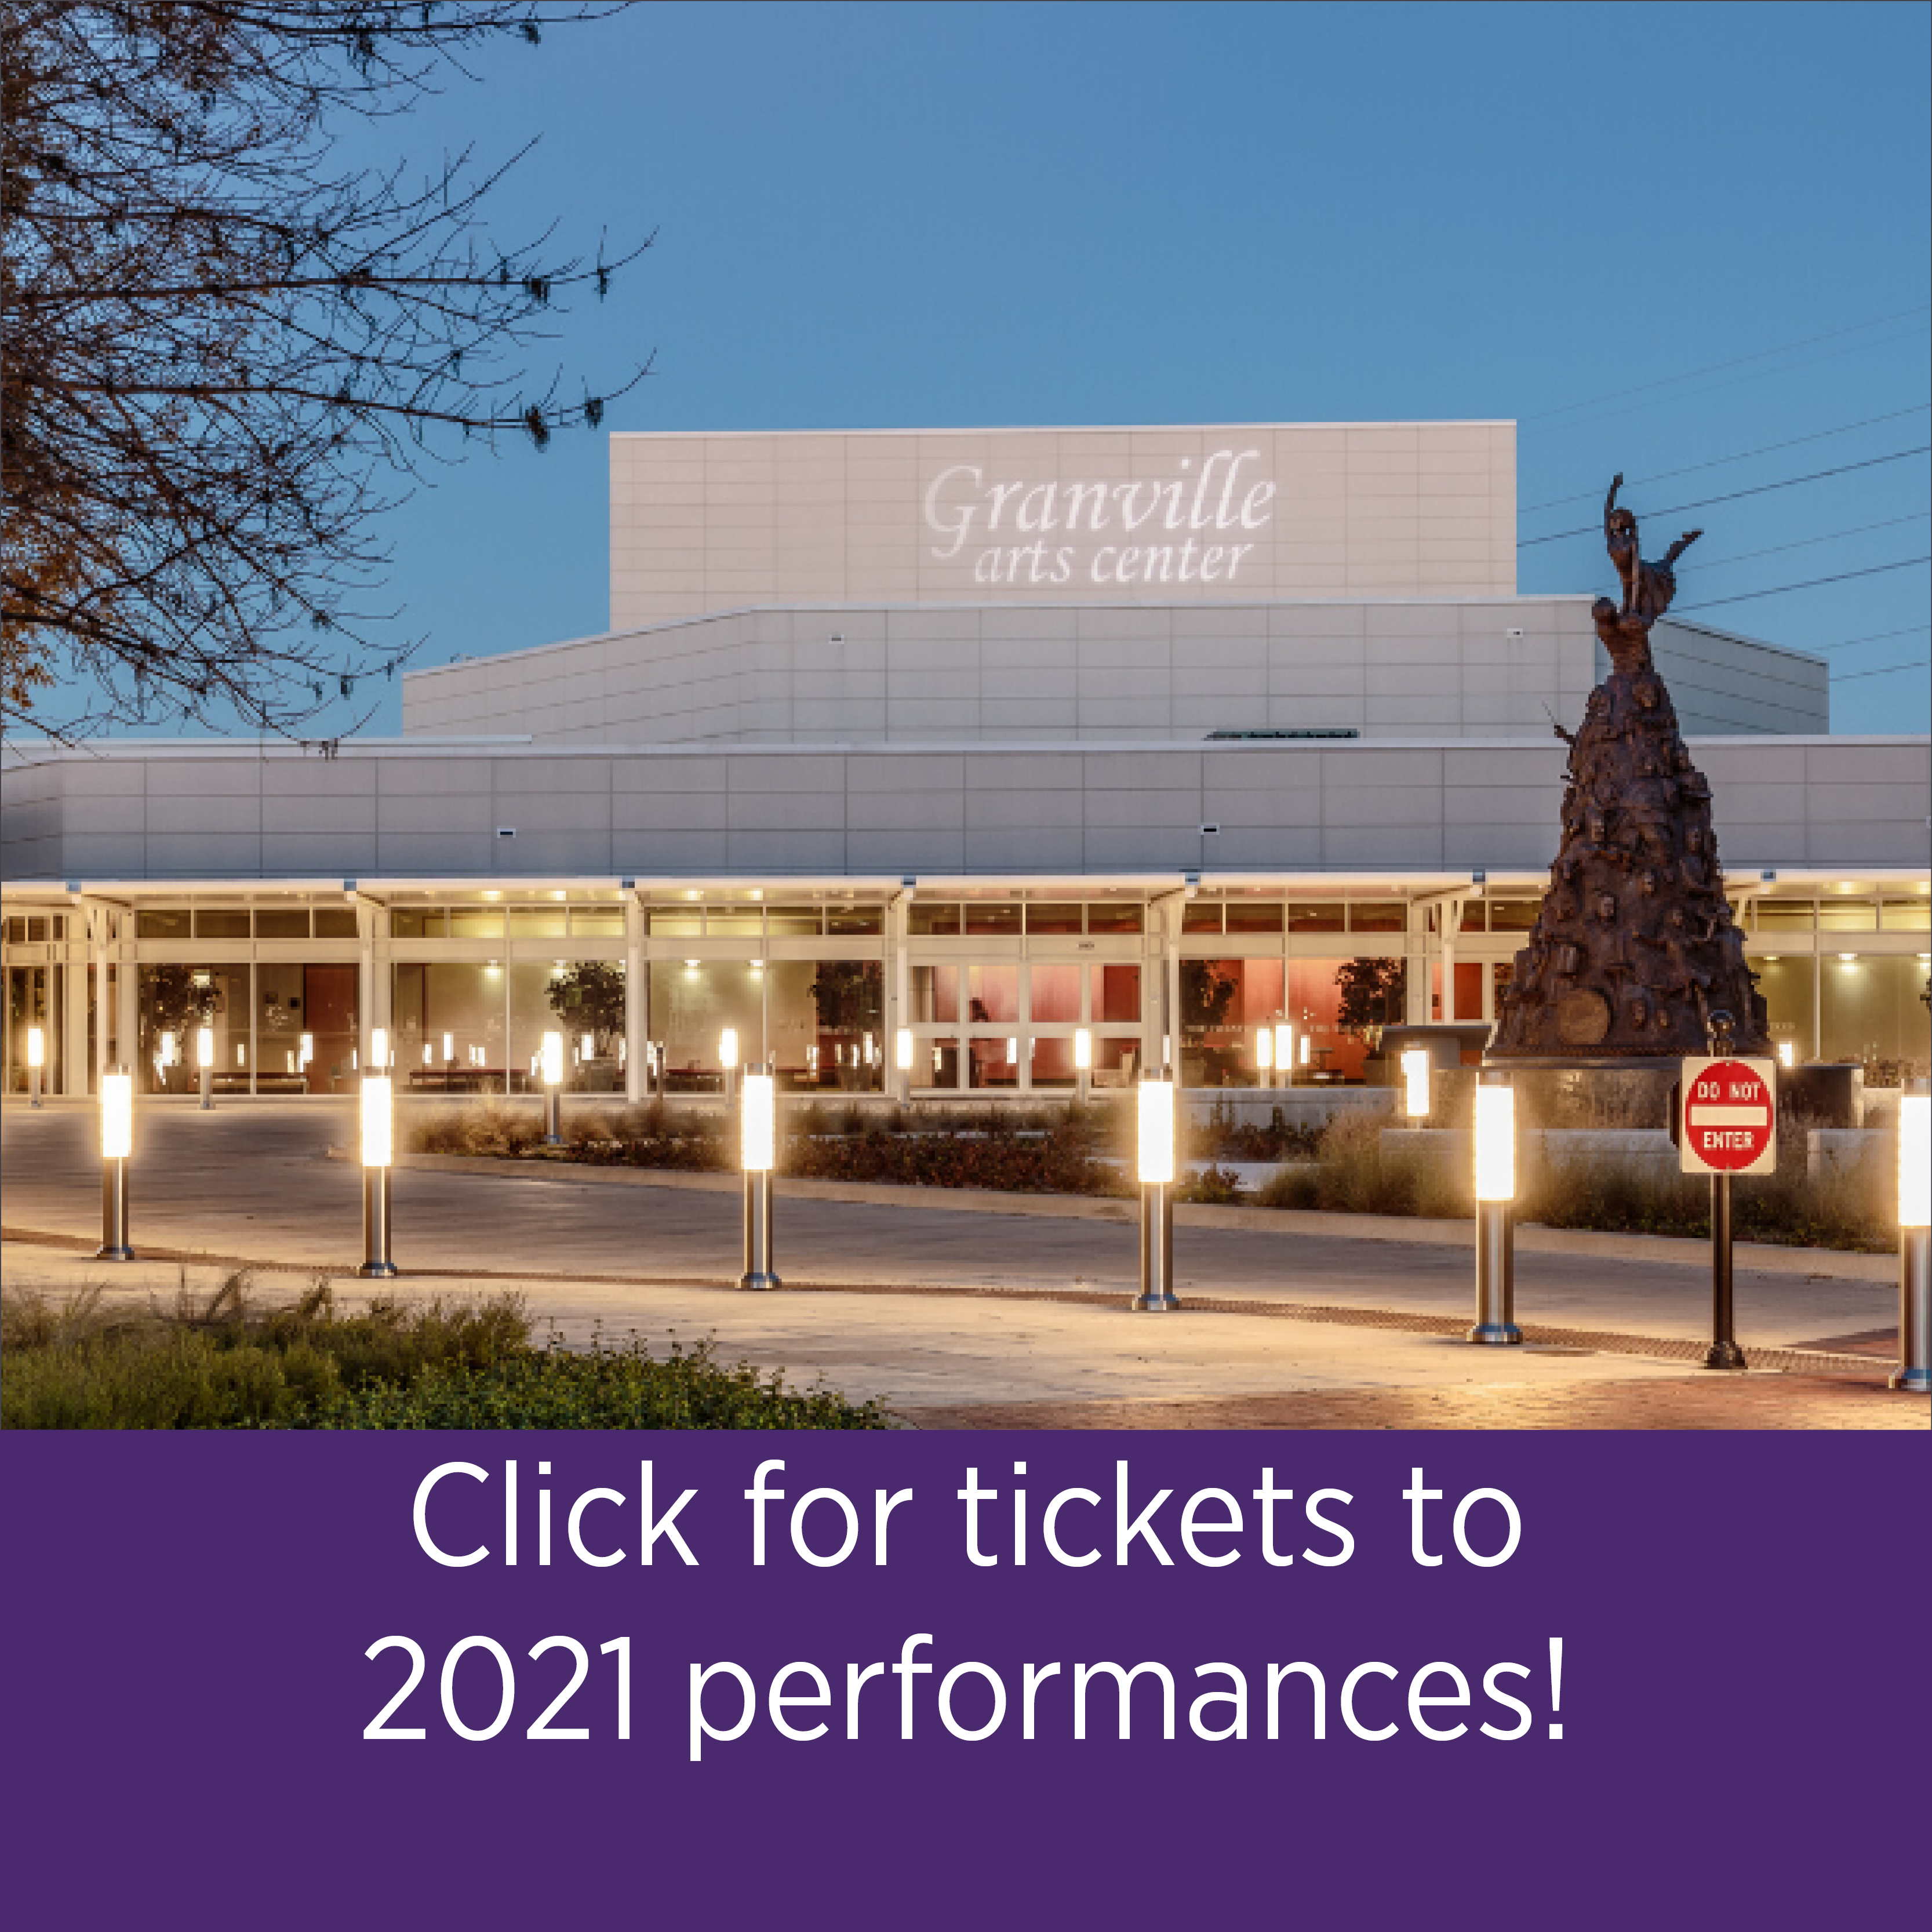 Click for tickets to 2021 performances!